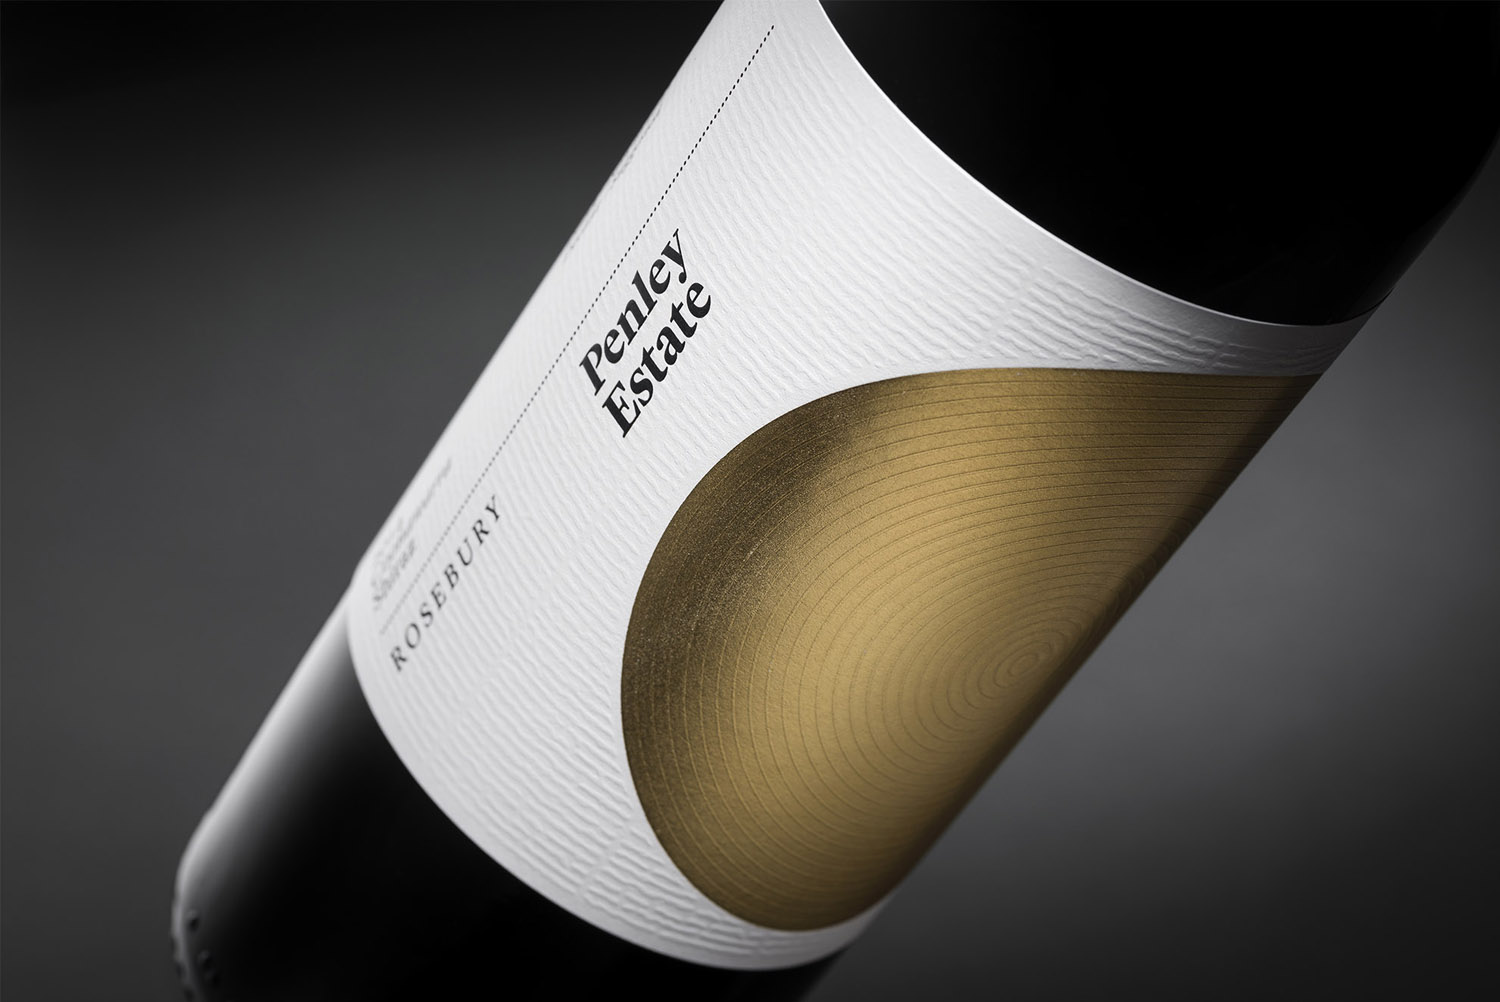 New brand identity and packaging by Parallax Design for family run and award winning winery Penley Estate, Australia